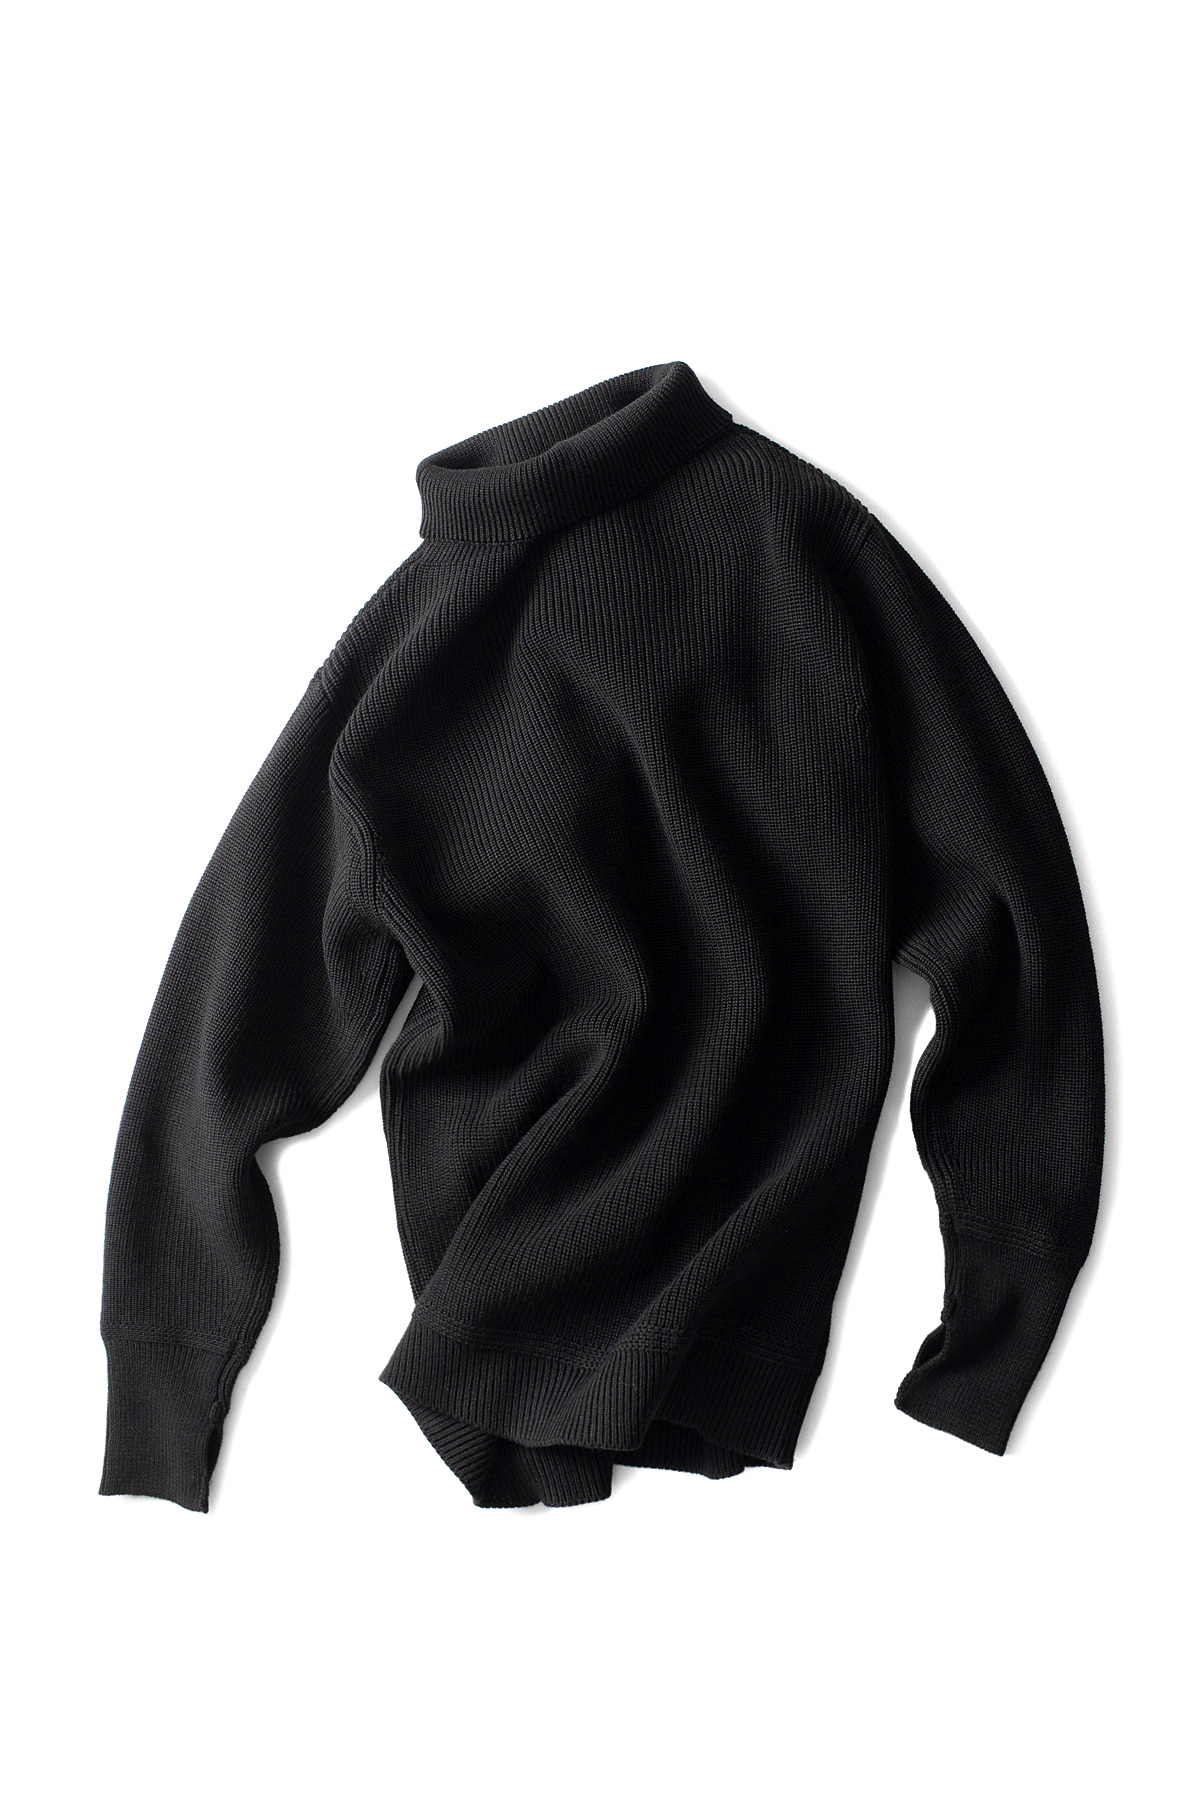 Andersen-Andersen : Sailor Turtleneck (Black)